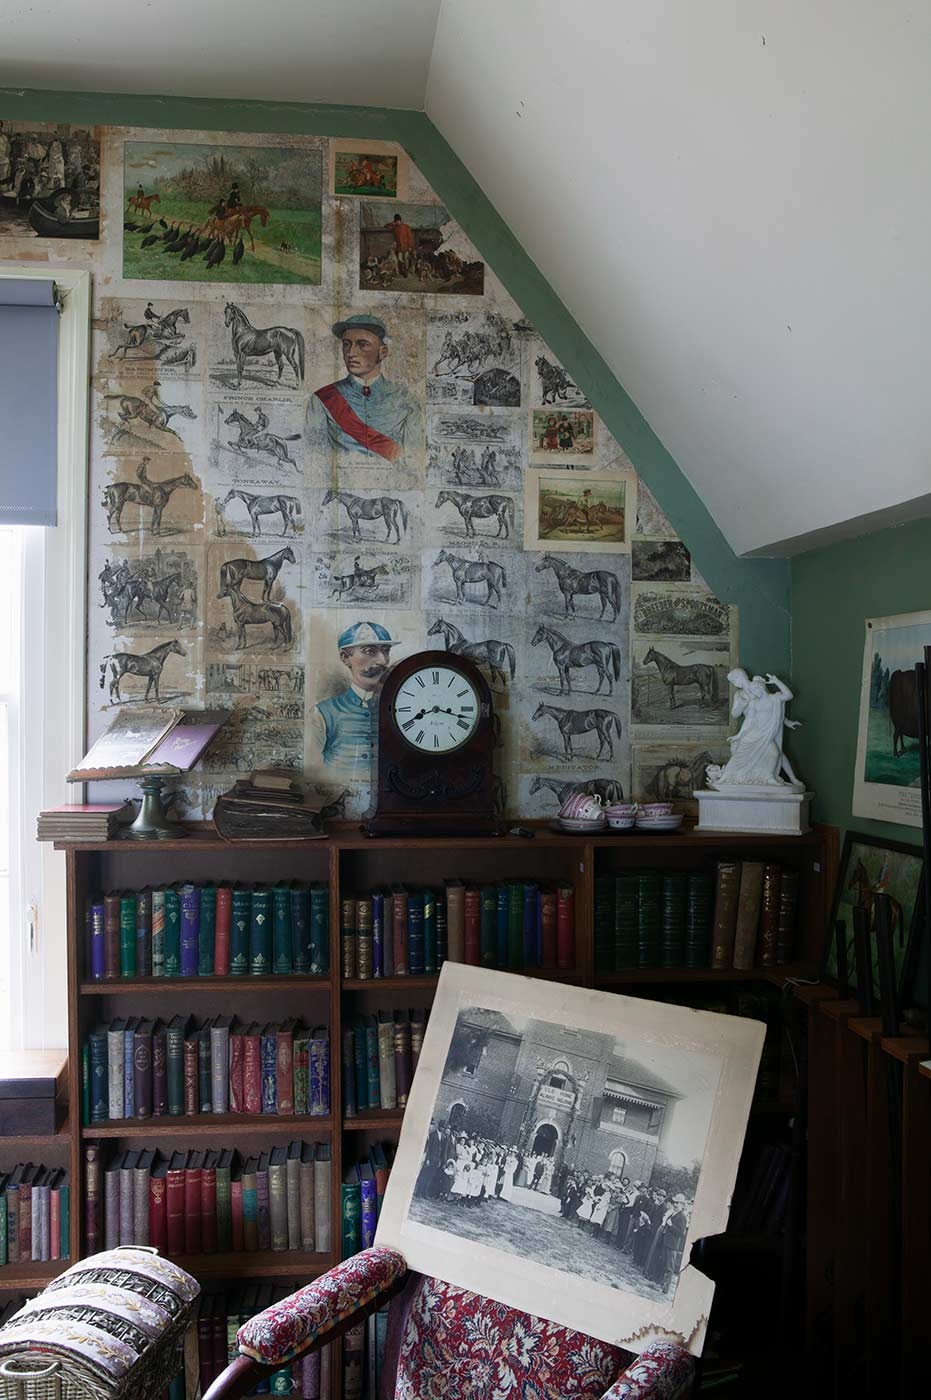 Interior view of a room filled with books, art, furniture and other various household objects. - click to view larger image